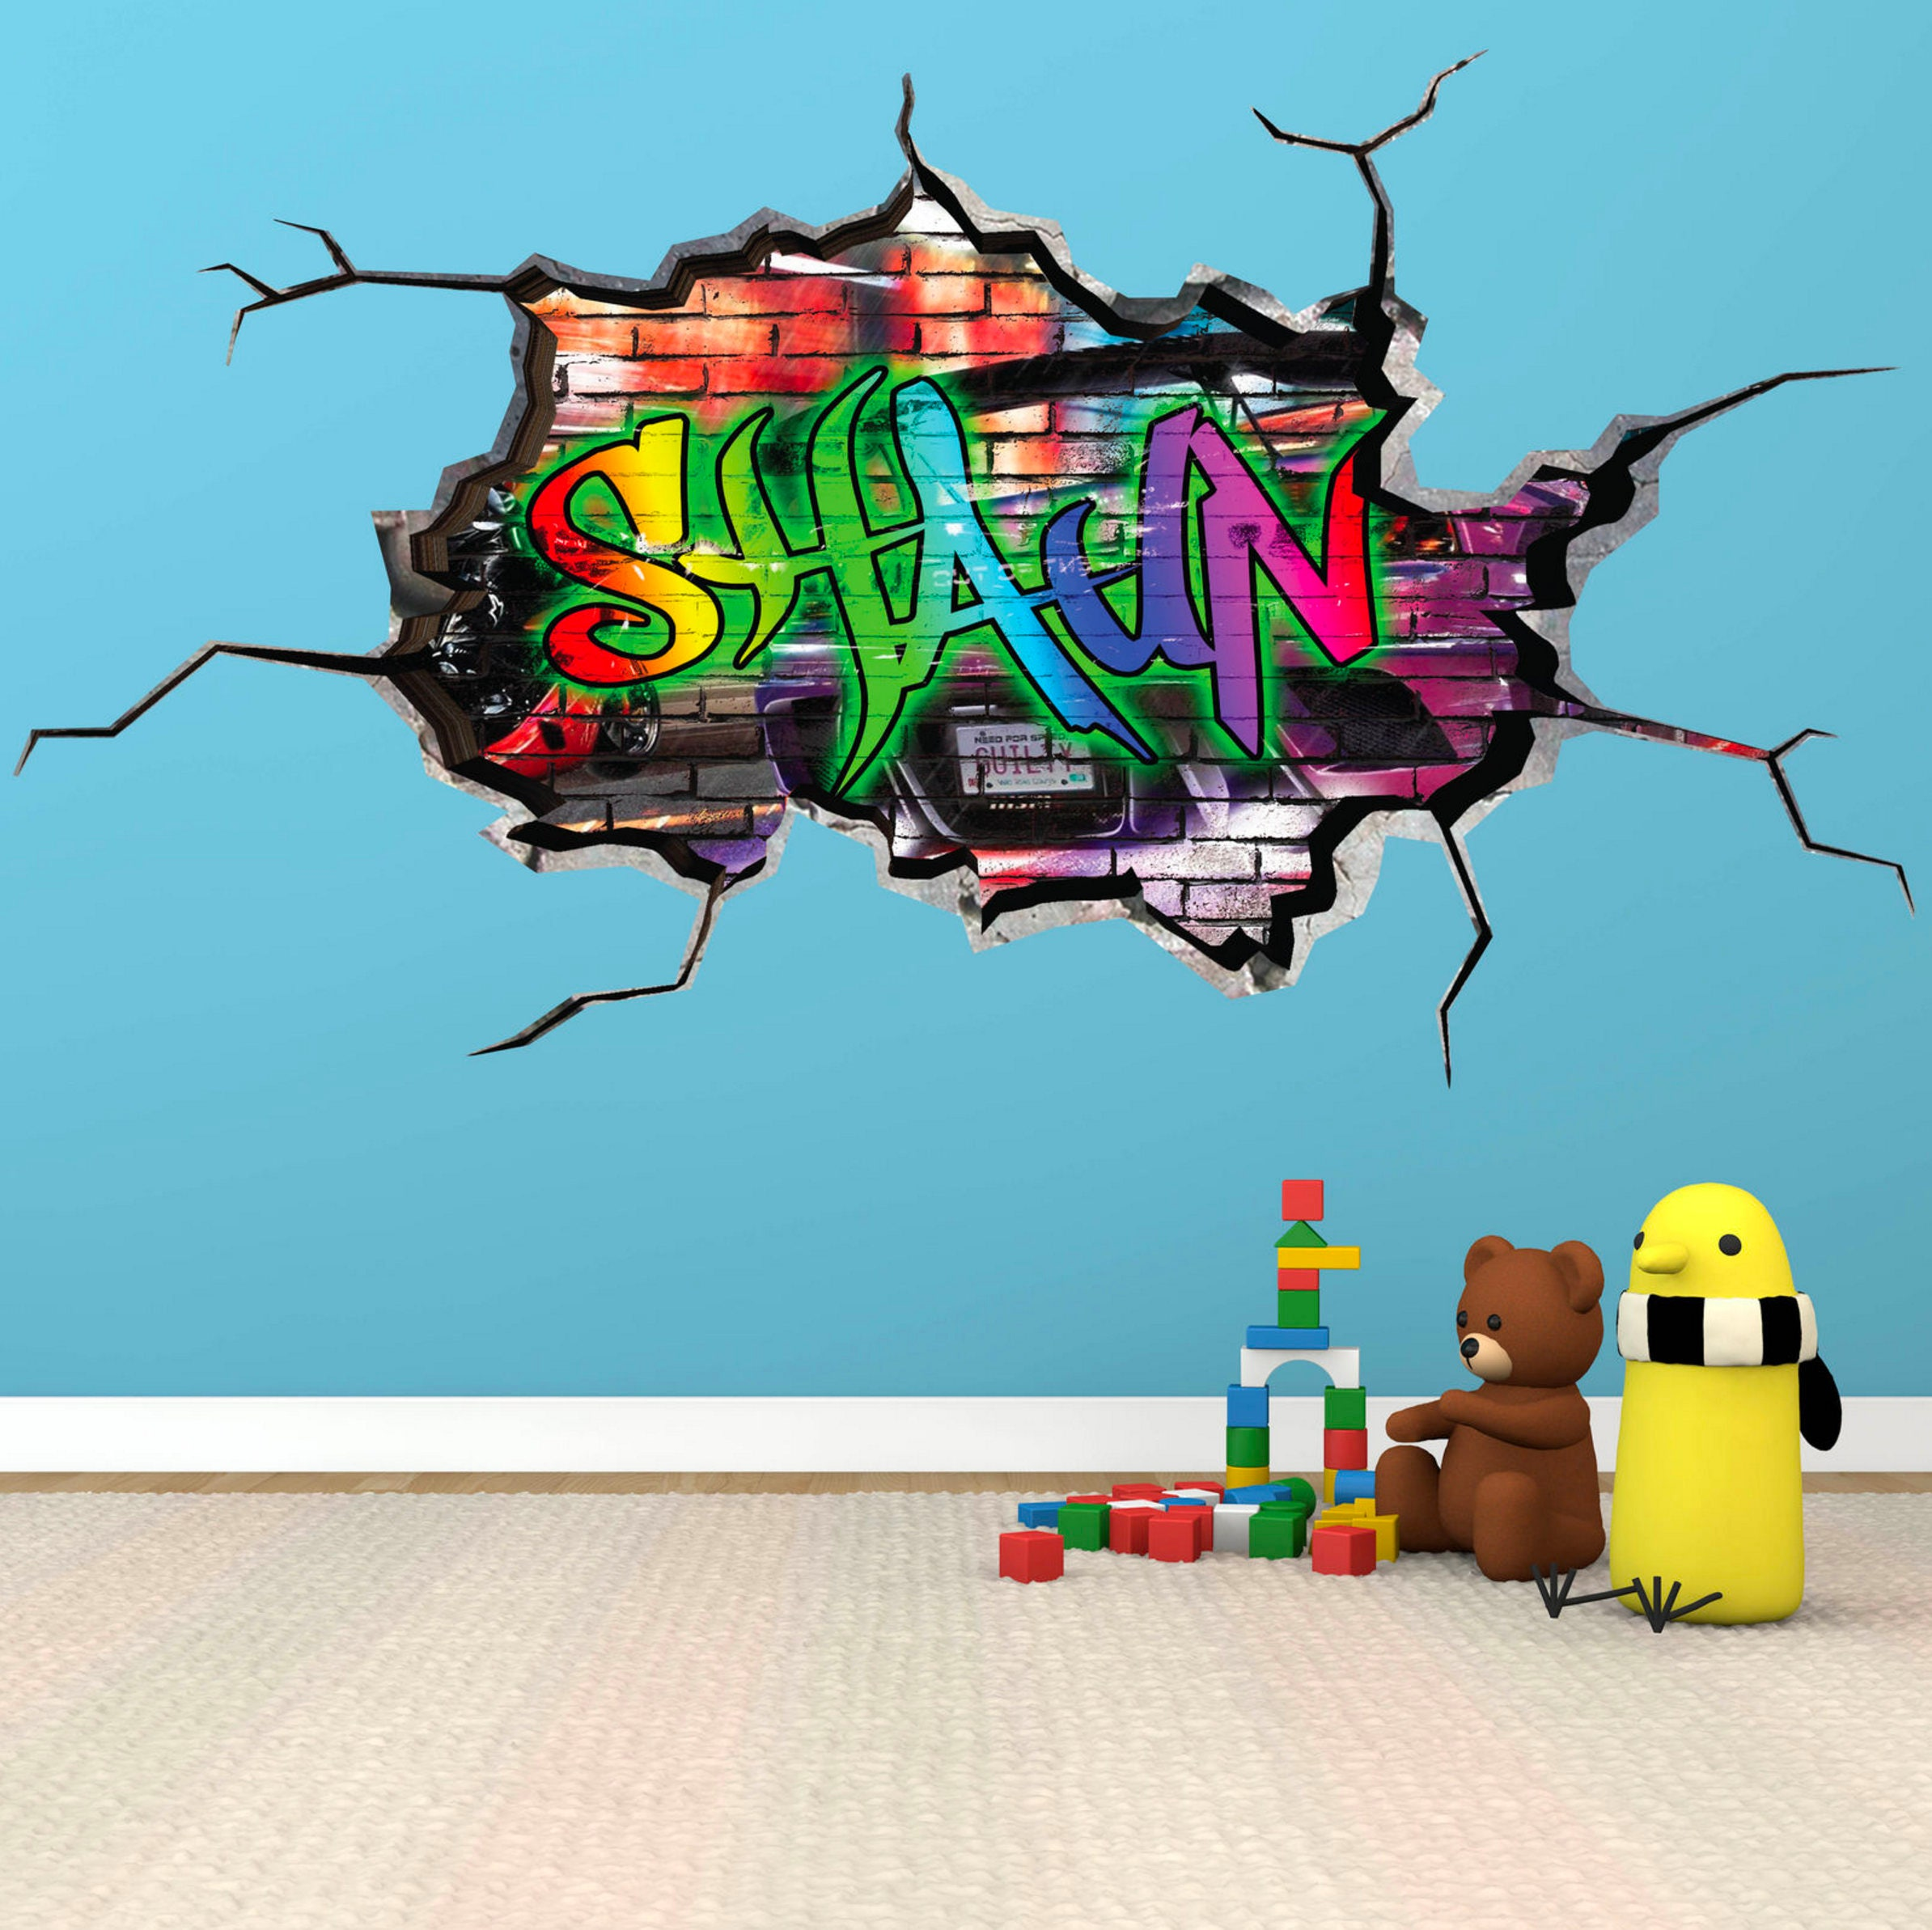 PERSONALISED NAME Custom Wall Decal Cracked Wall 3D Vinyl Wall Sticker  Urban Decal Boys Girls Mural Part 93